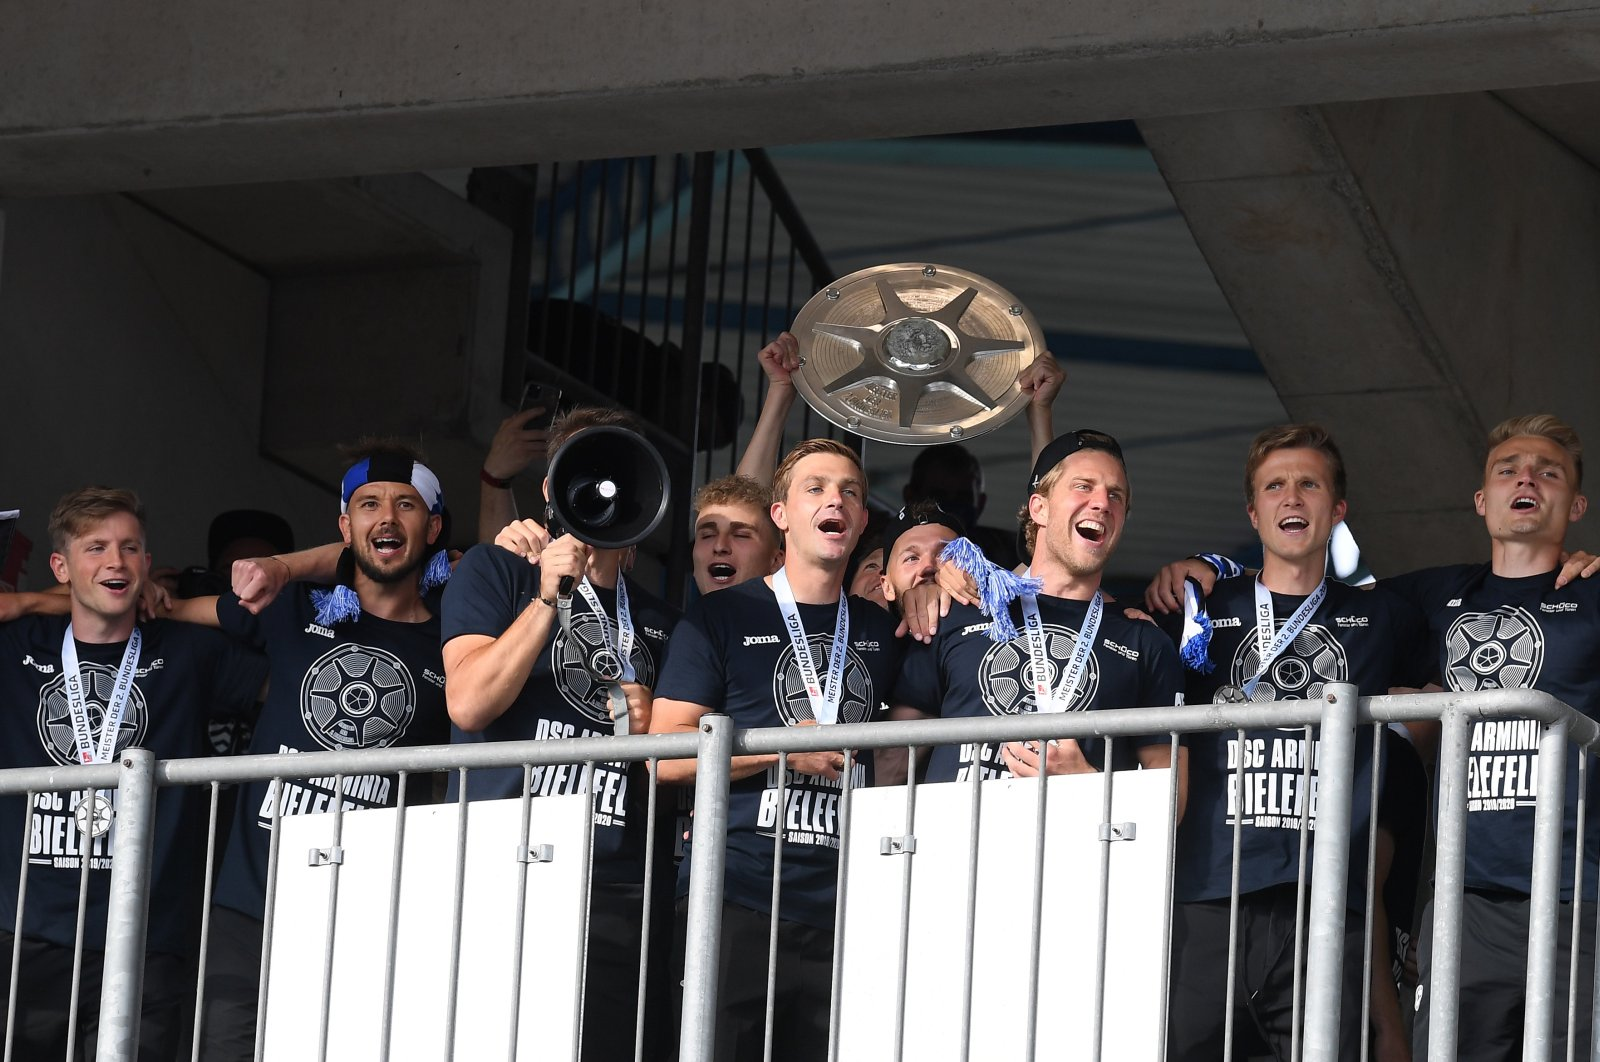 Players of Bielefeld celebrate with the championship trophy after the German Bundesliga Second Division match between DSC Arminia Bielefeld and FC Heidenheim 1846 in Bielefeld, Germany, June 28, 2020. (EPA Photo)